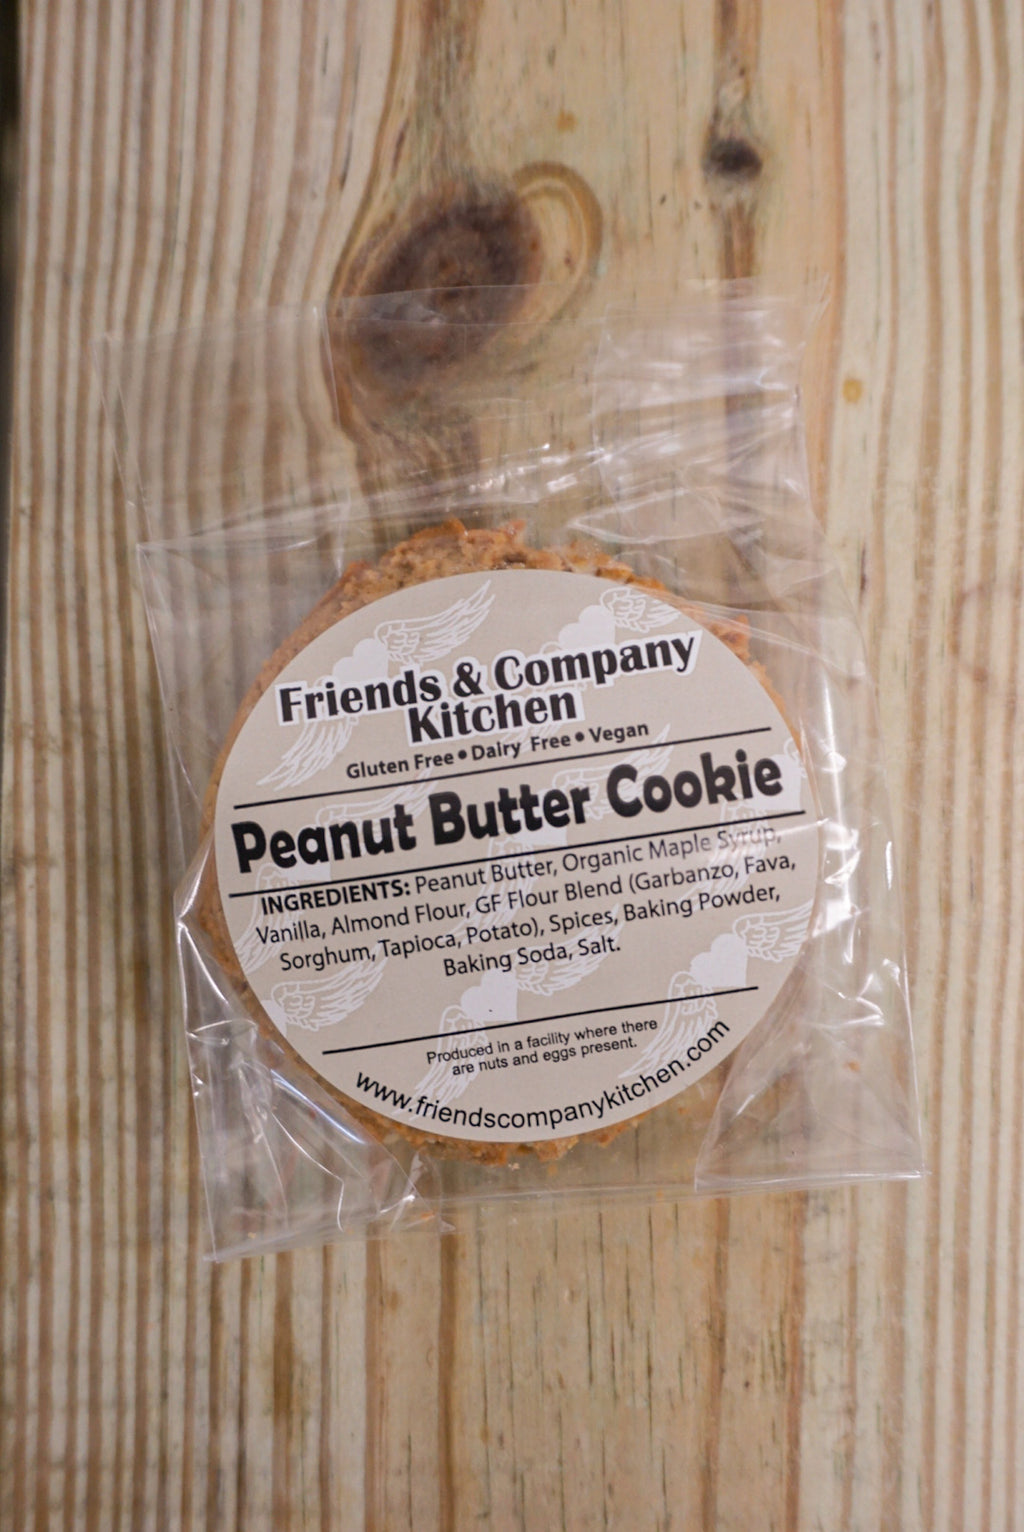 Friends & Company Kitchen Peanut Butter Cookie - Larchmont